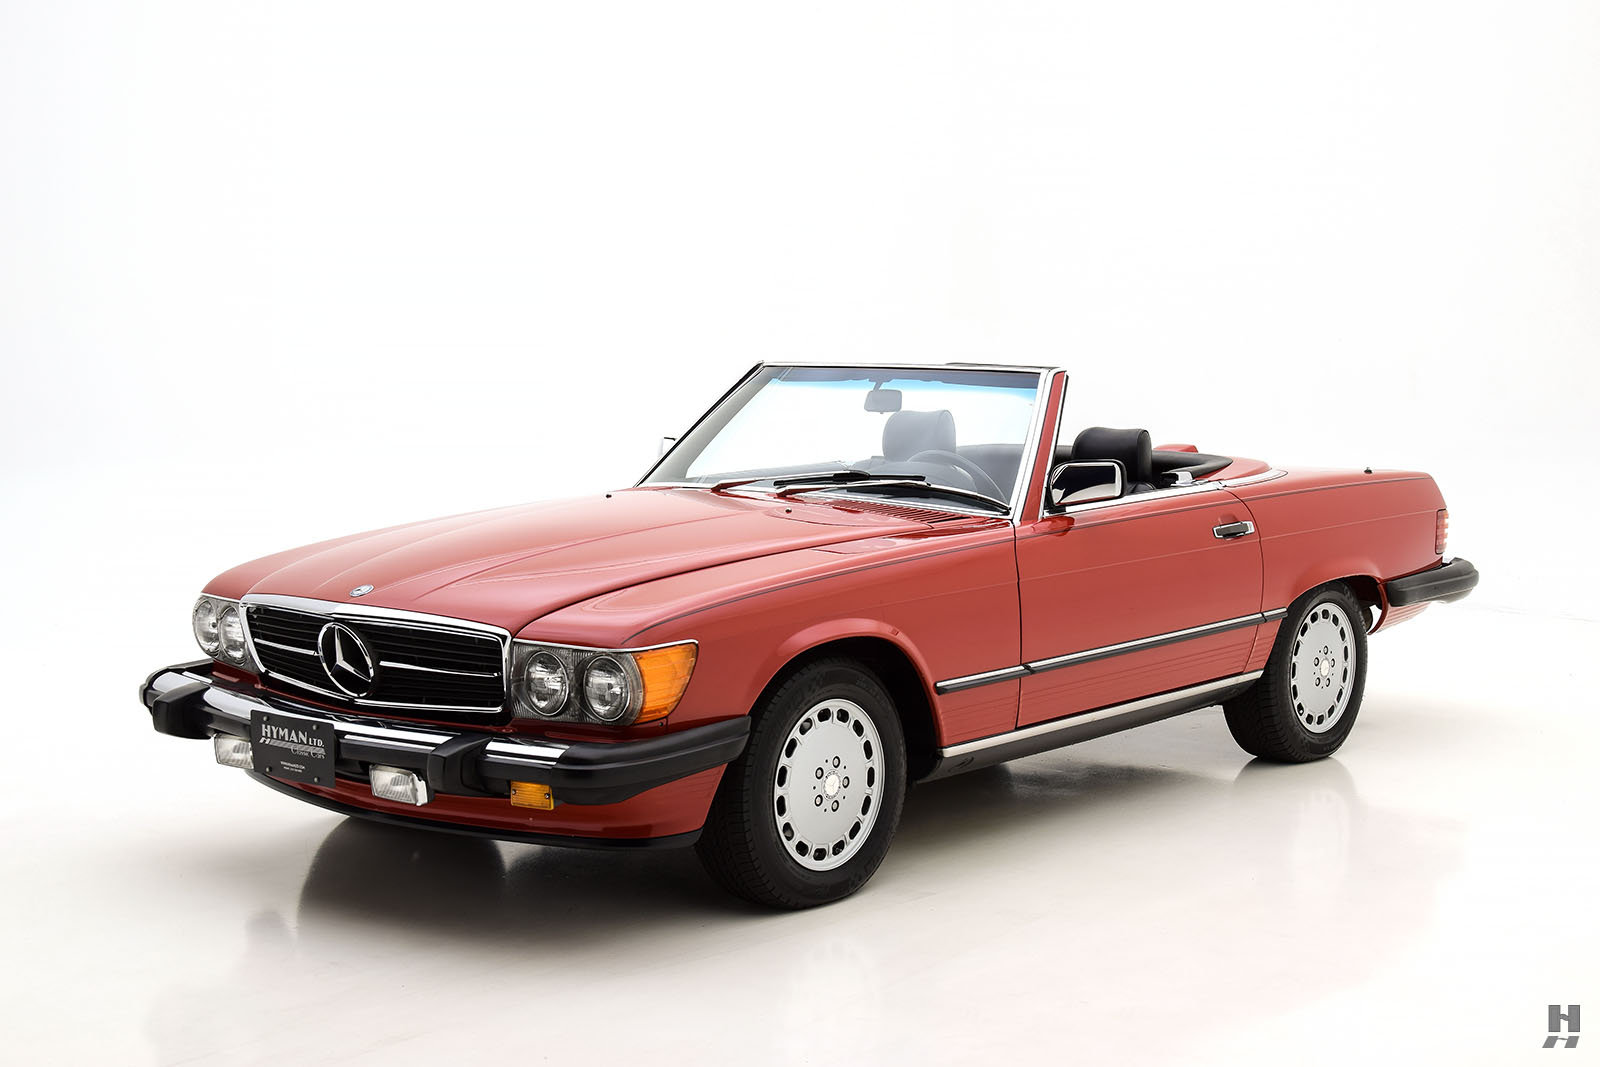 1987 MERCEDES-BENZ 560SL CONVERTIBLE For Sale (picture 1 of 6)